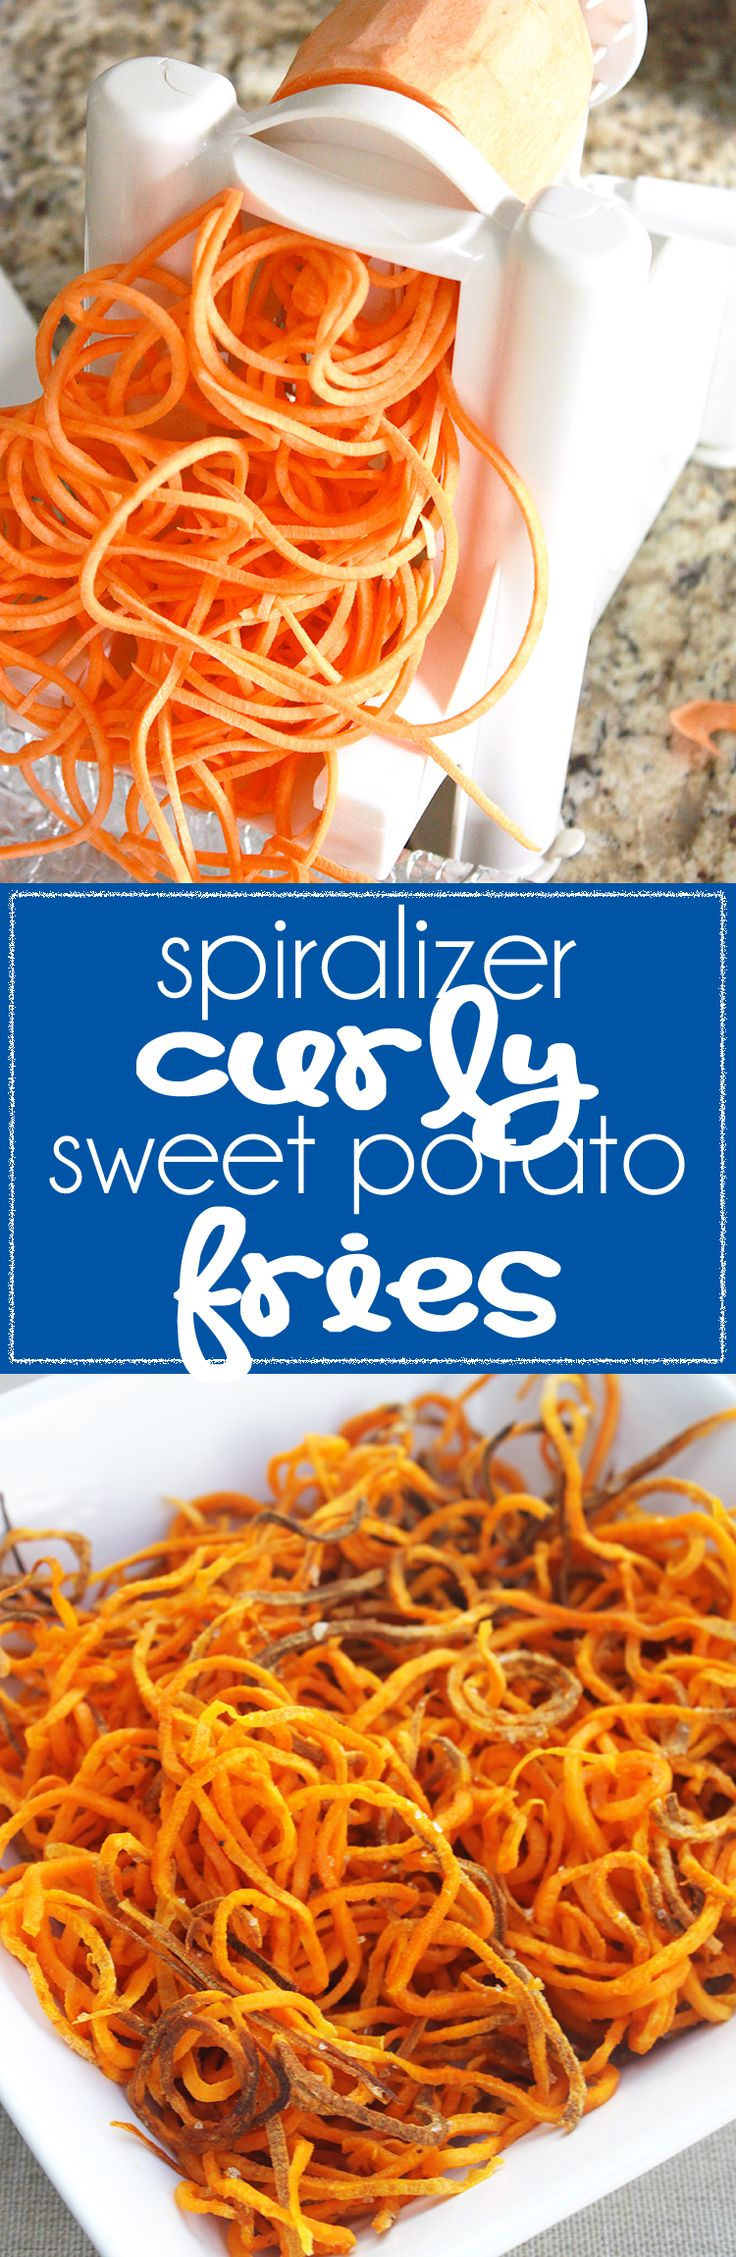 Spiralizer Curly Sweet Potato Fries on MyRecipeMagic.com